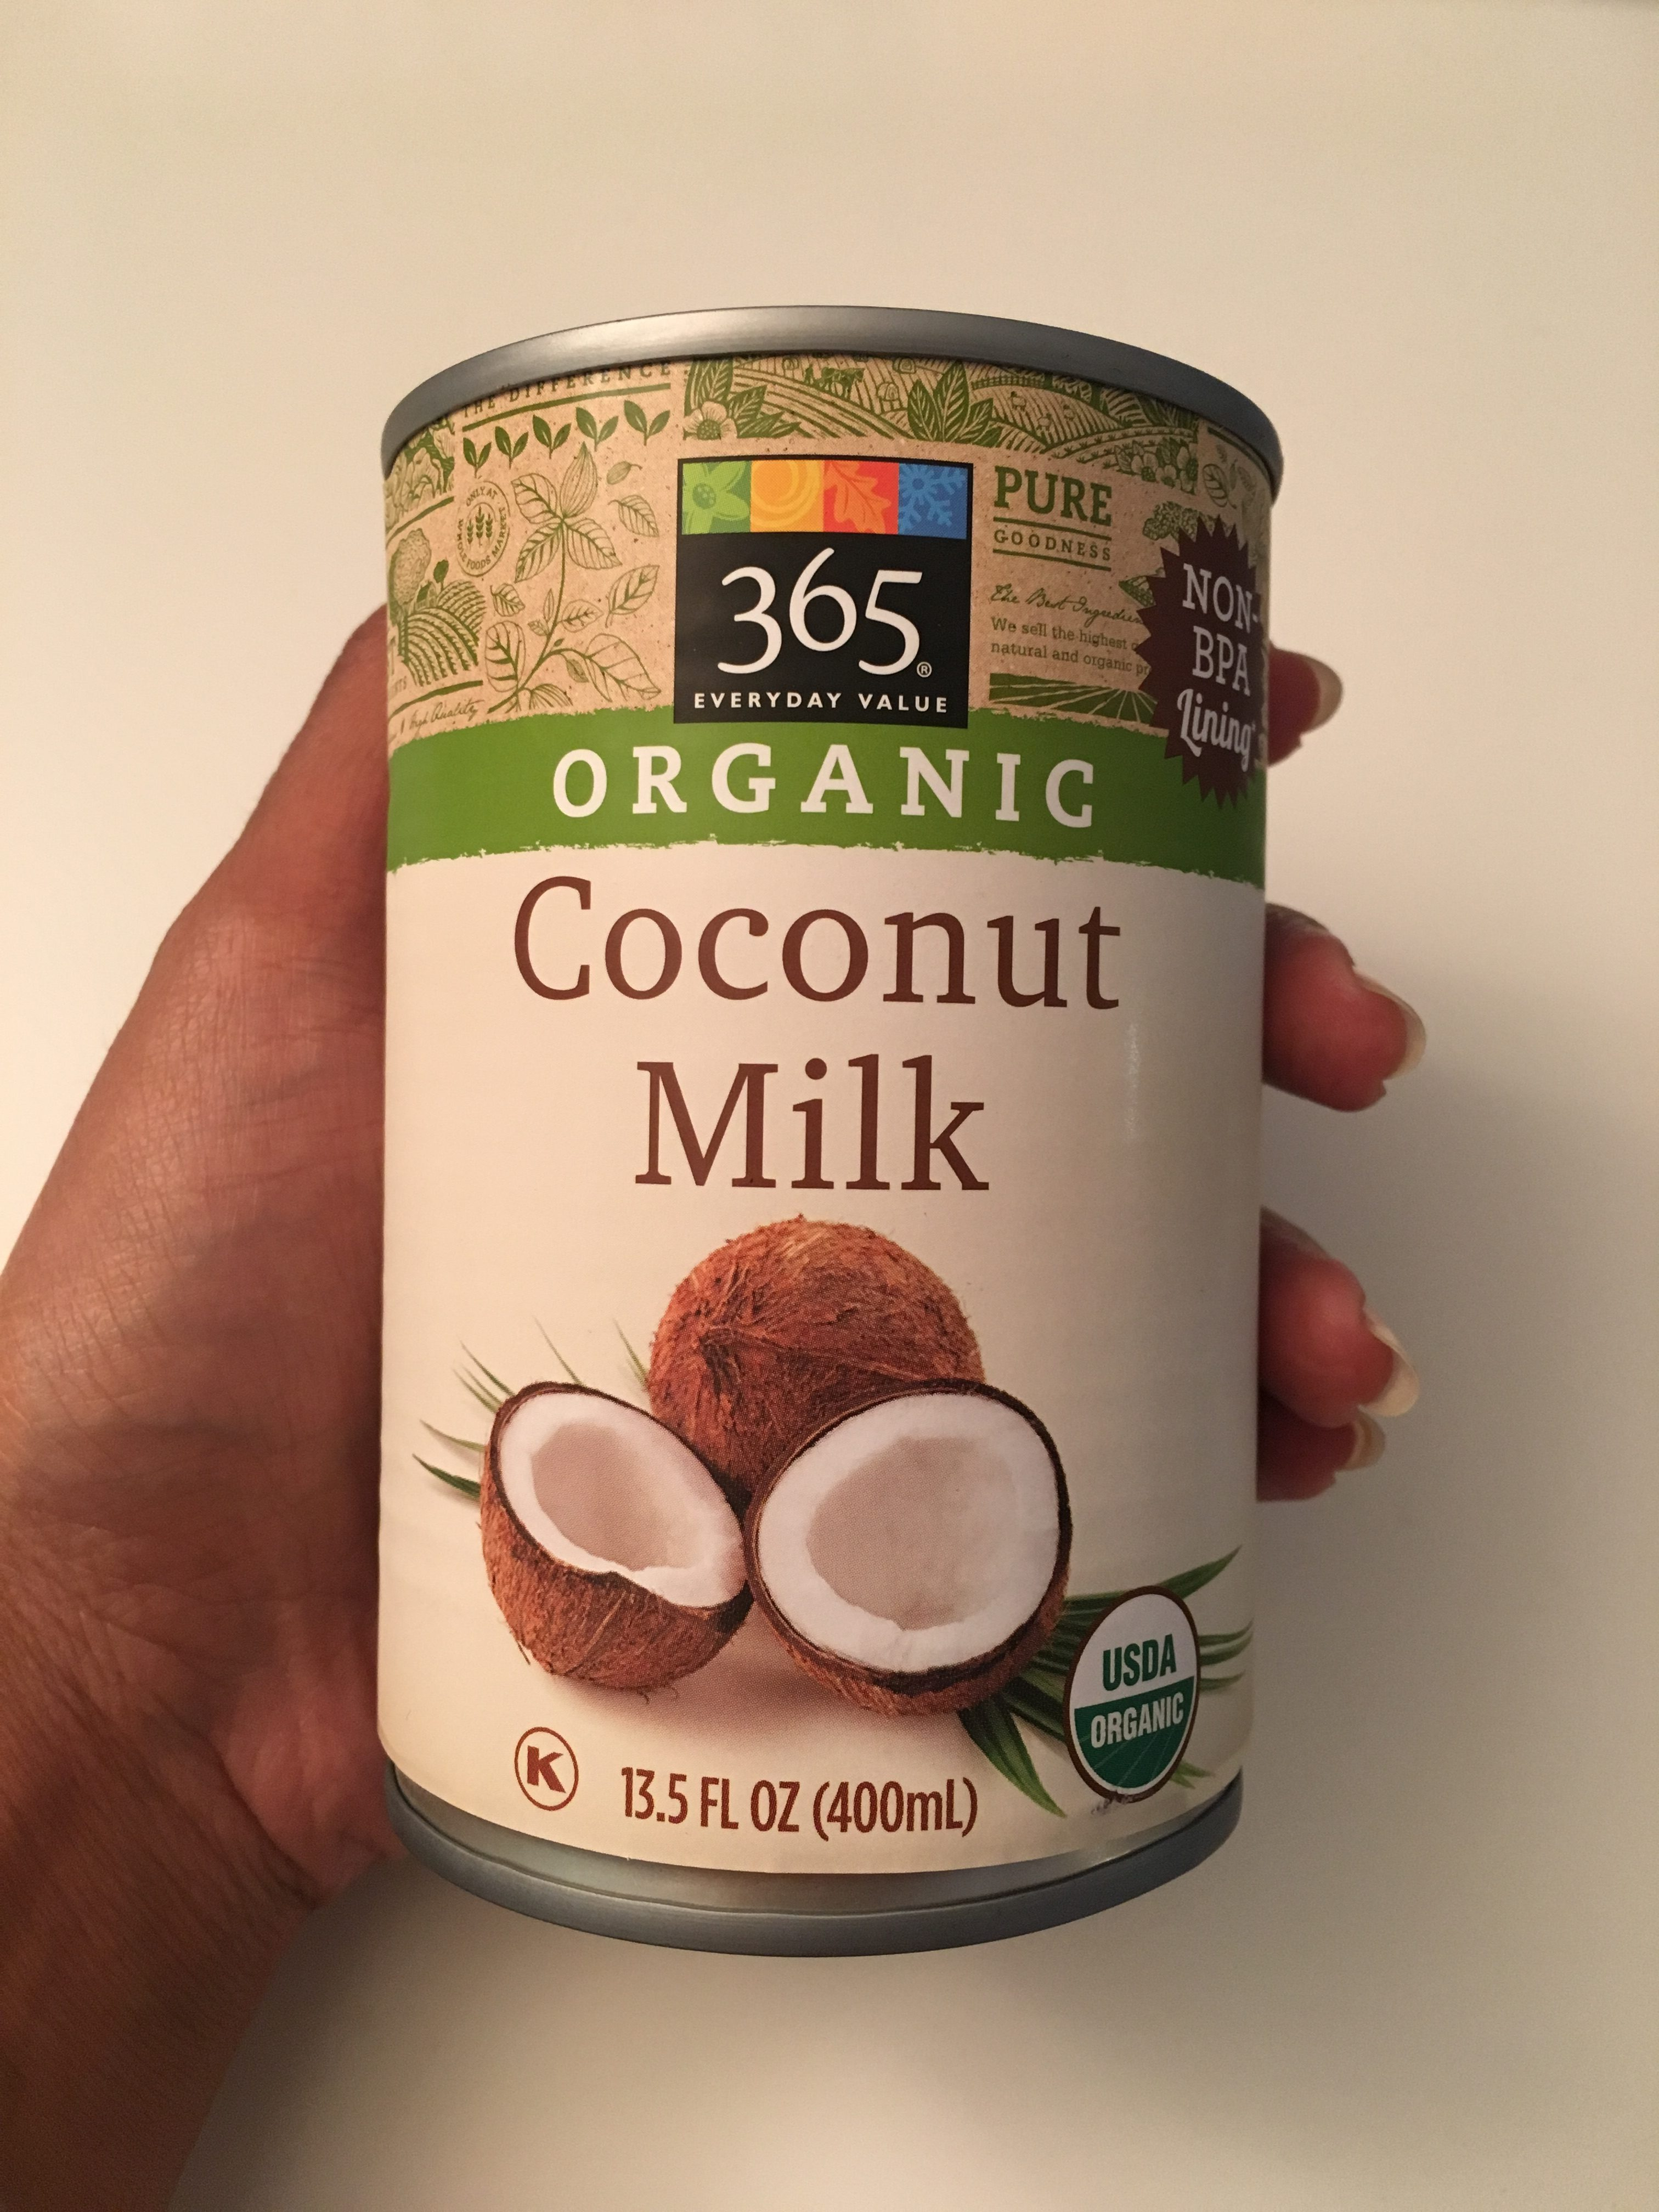 Whole 30 Approved Whole Foods Coconut Milk